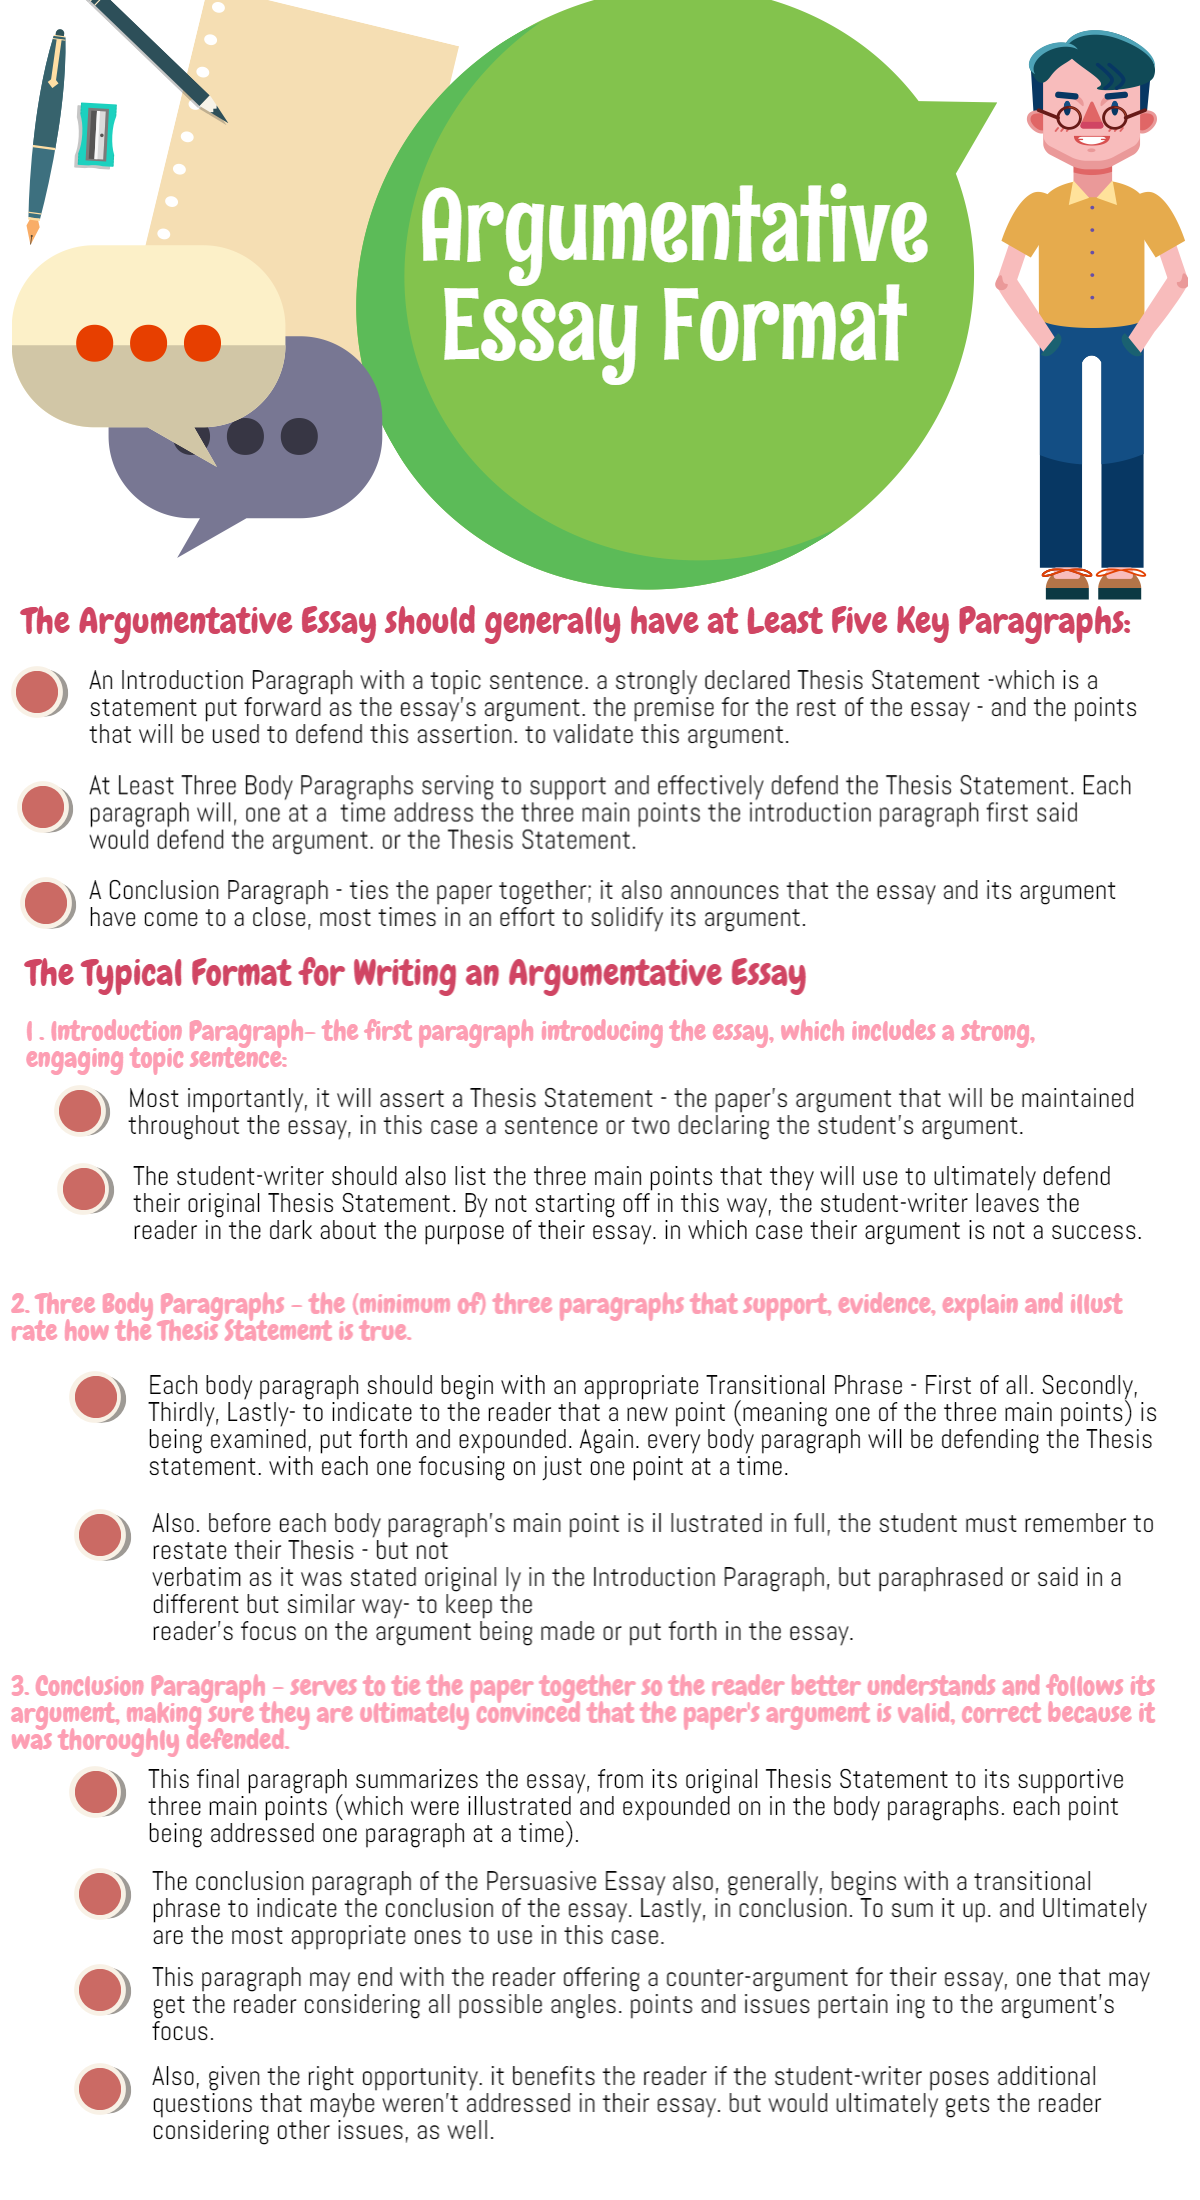 how to format your argumentative essay your professor will just love  how to format your argumentative essay your professor will just love  answers are in the infographics